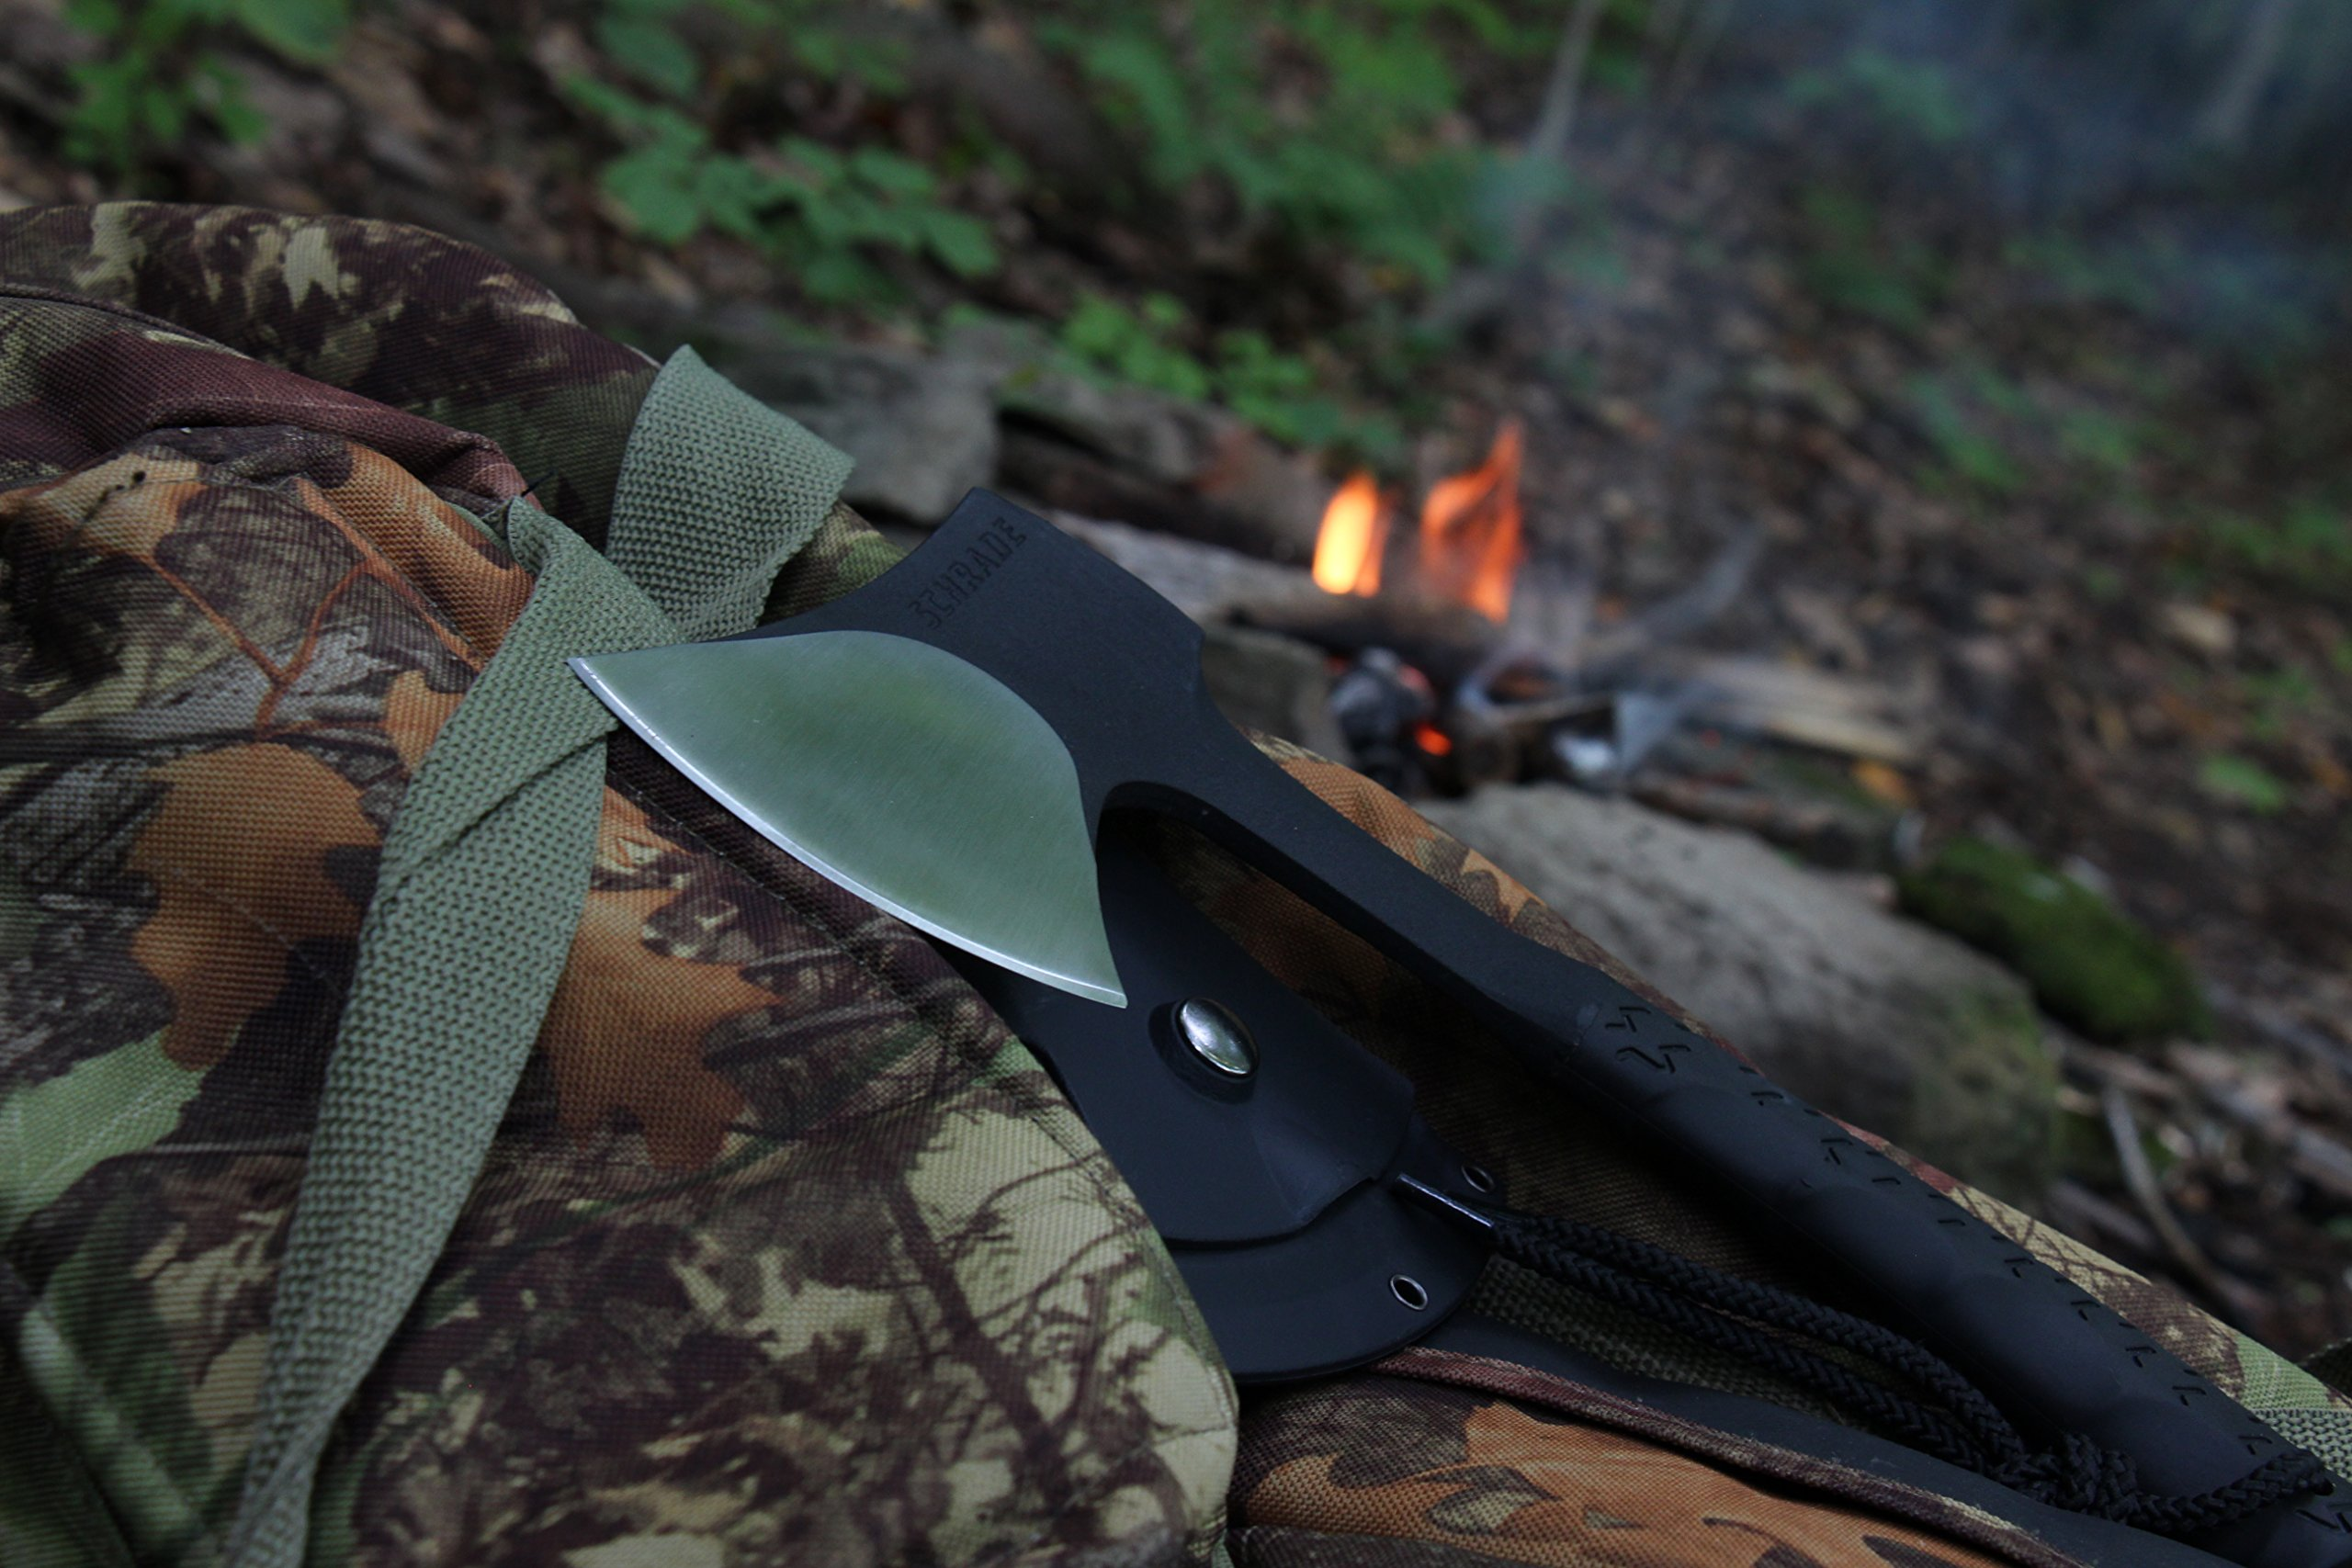 Schrade SCAXE10 11.1in Full Tang Hatchet with 3.6in Stainless Steel Blade and TPR Handle for Outdoor Survival Camping and Everyday Carry by Schrade (Image #2)